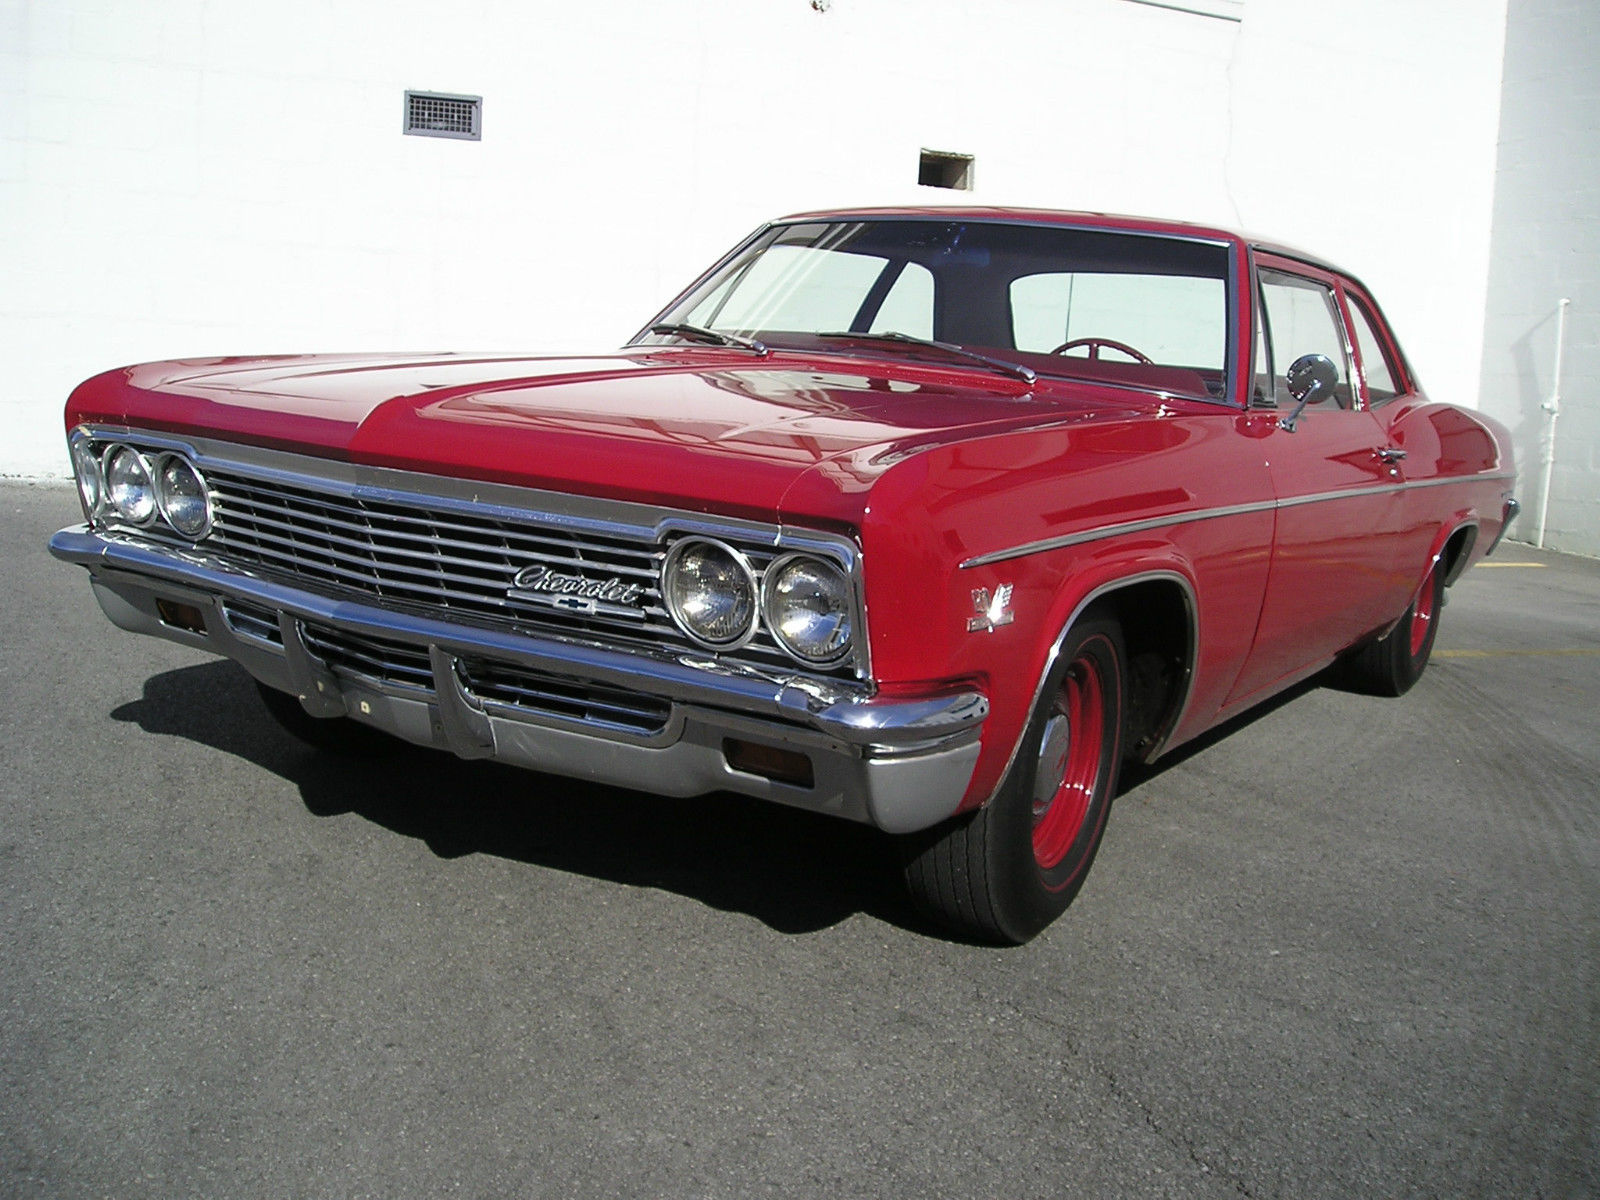 427 425hp Matching Engine Biscaynesuper Sport Impalacaprice 1966 Chevy Bel Air For Sale Chevrolet 150 210 L 72